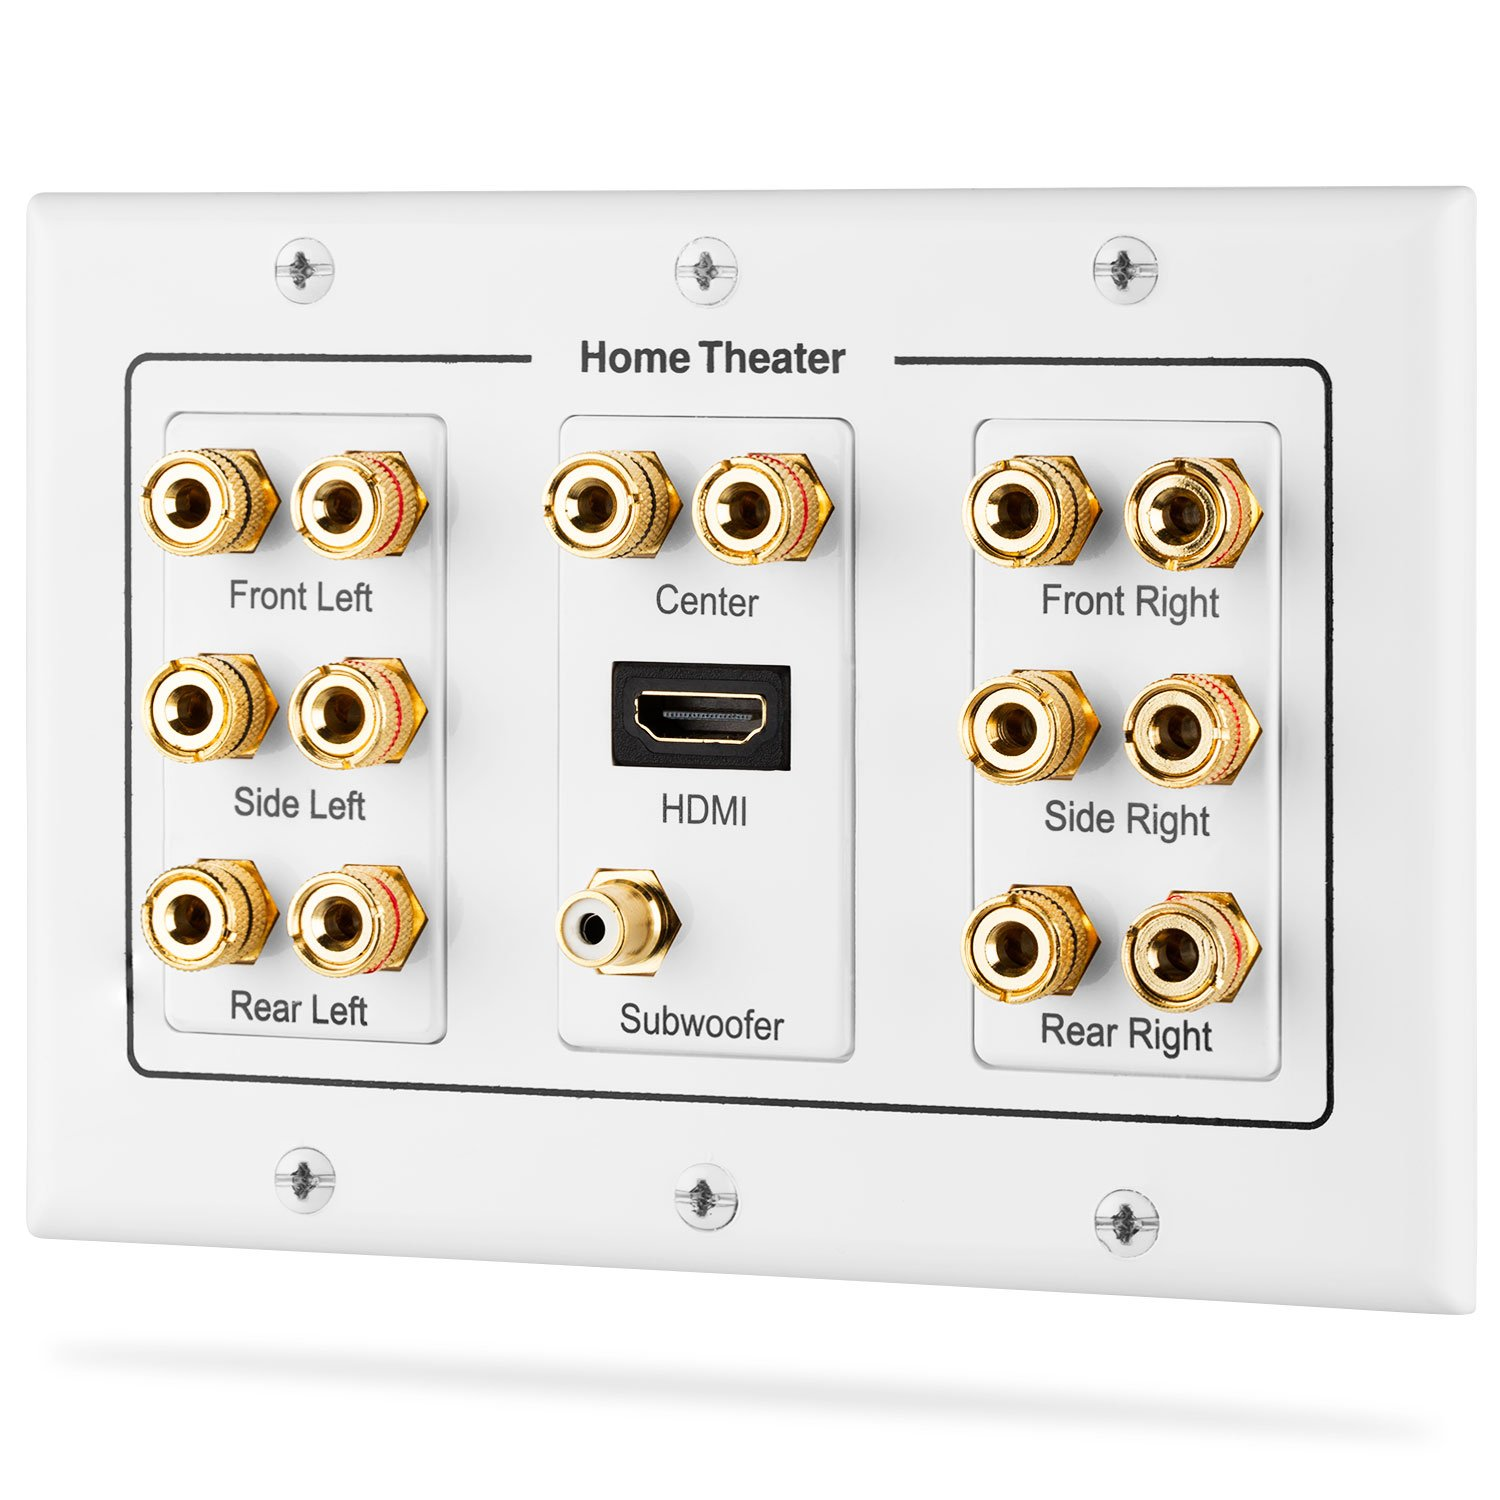 Fosmon [3-Gang 7.1 Surround Distribution] Home Theater Wall Plate, Premium Gold Plated Copper Banana Binding Post Coupler Type Wall Plate for 7 Speakers, 1 RCA Jack & 1 HDMI Port with Ethernet